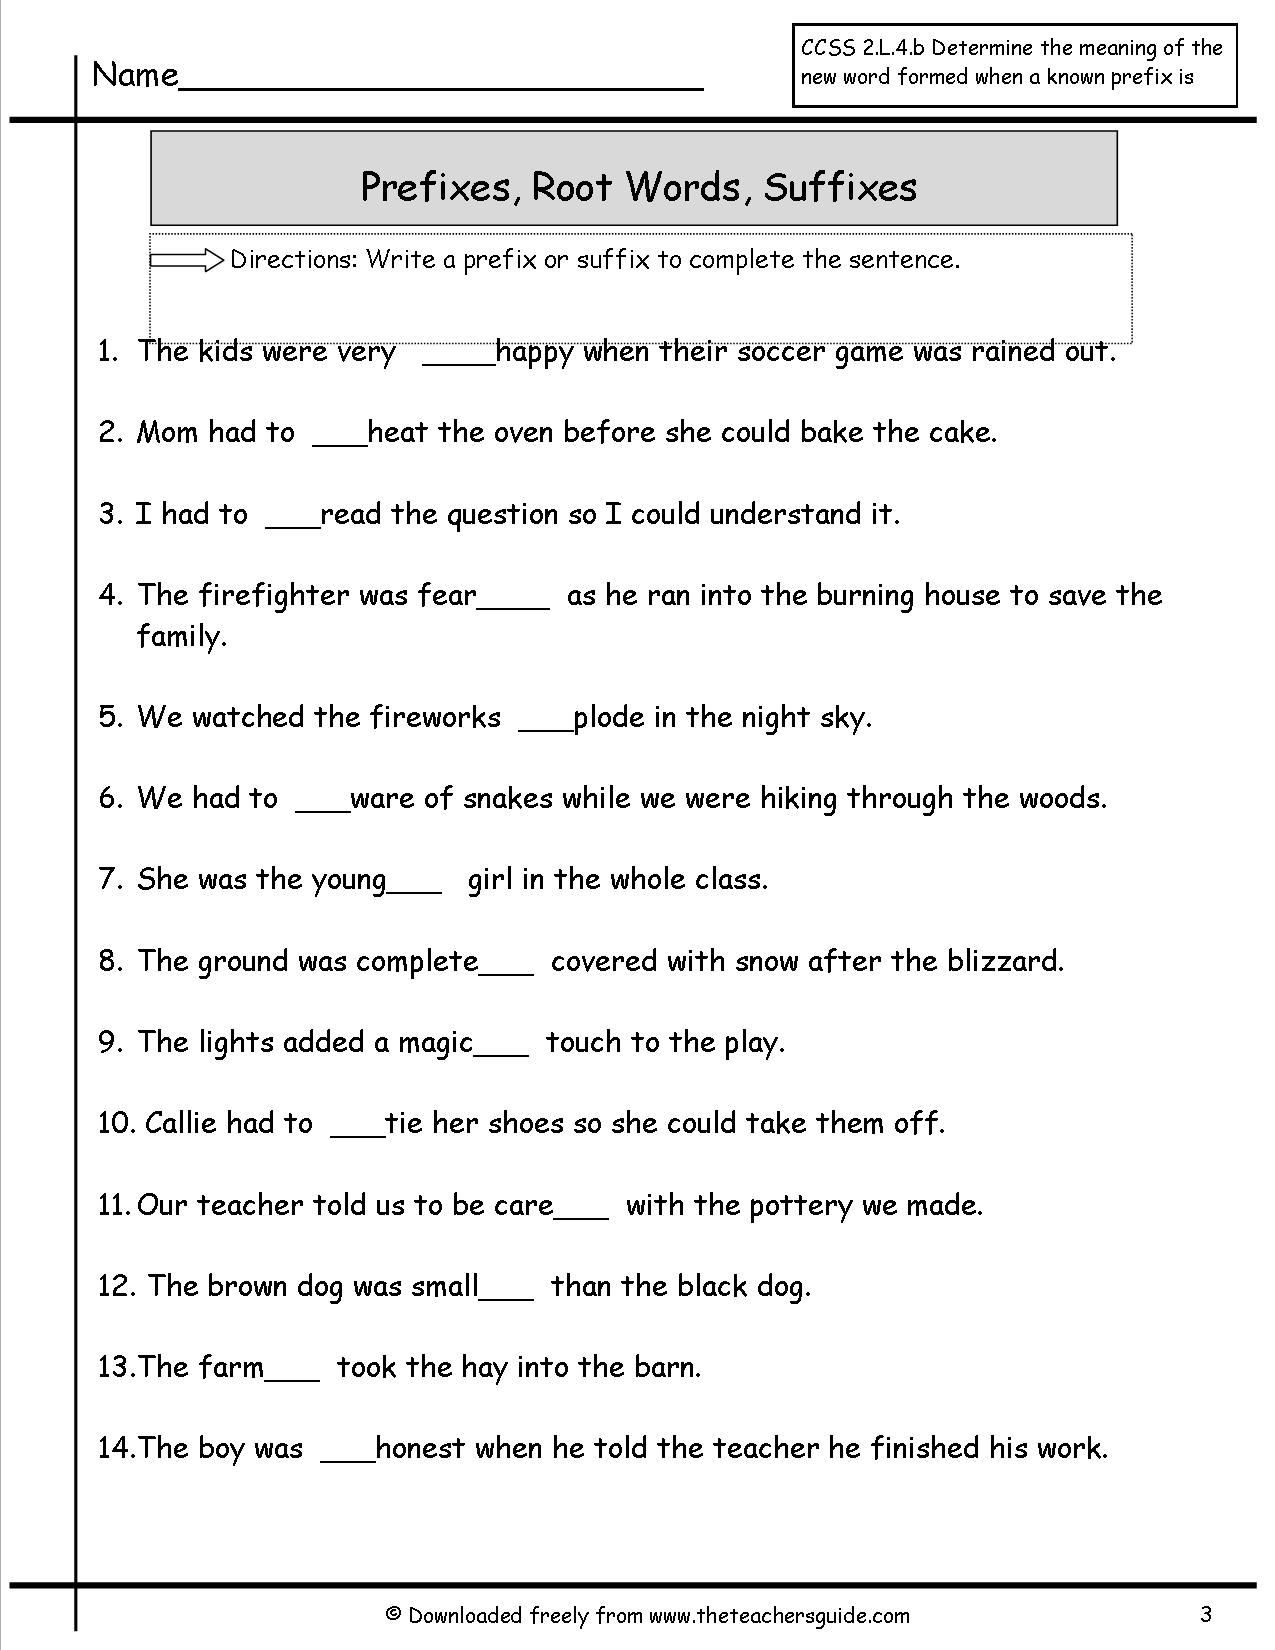 Suffix Worksheets 4th Grade Prefixes Suffixes Worksheet